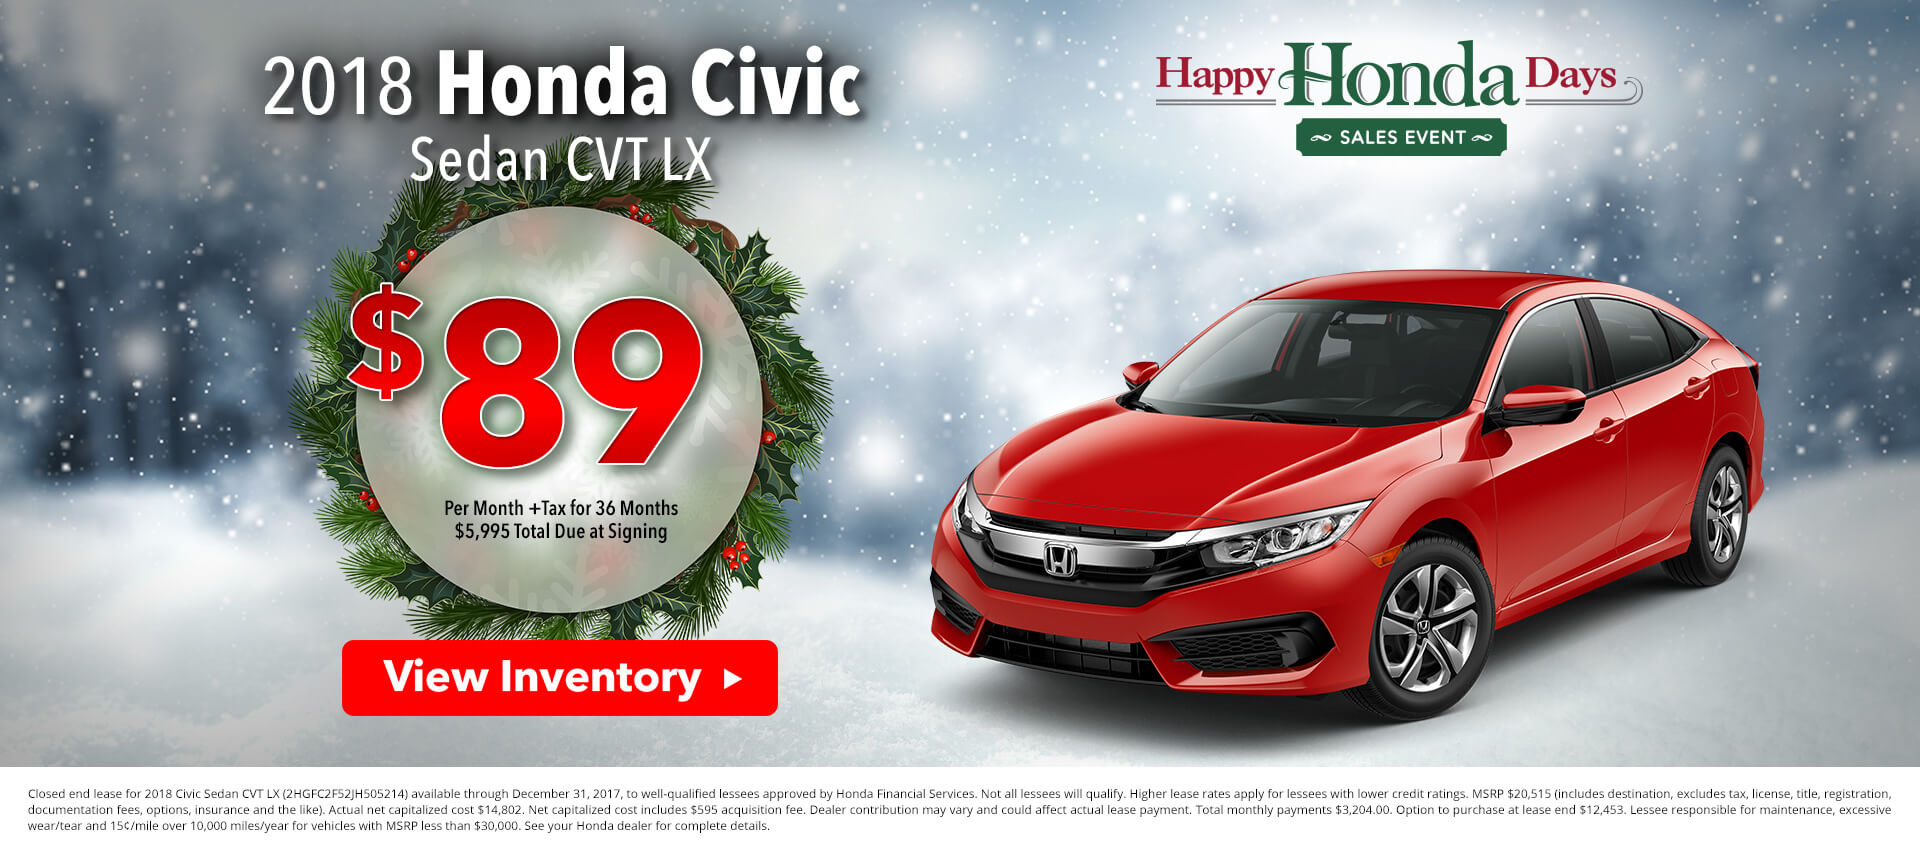 Civic HP